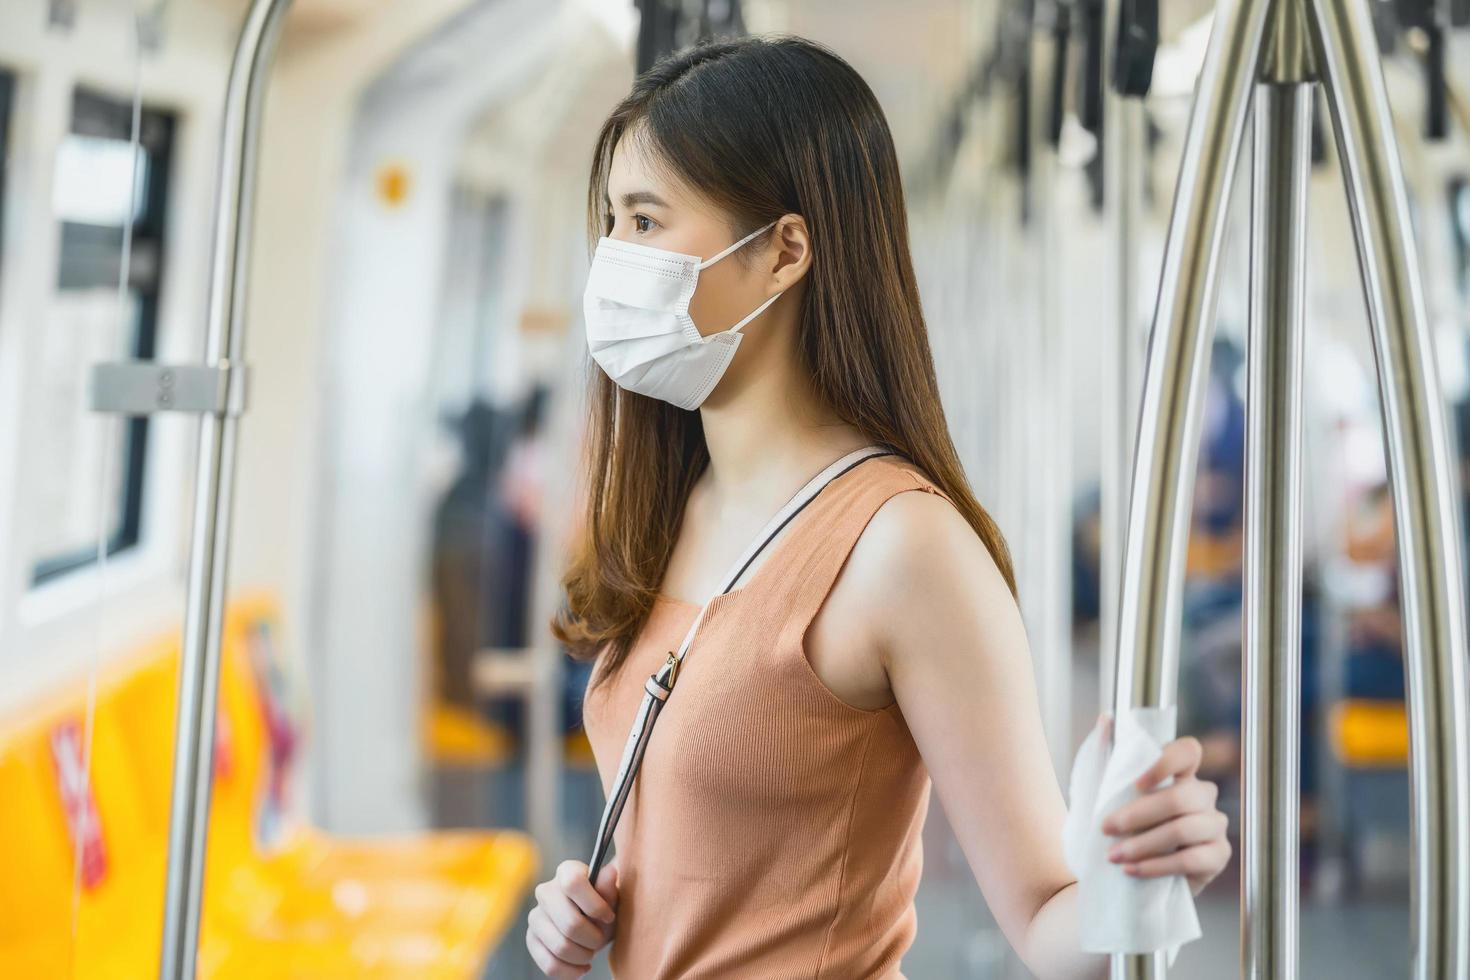 Woman riding a train with a mask on photo